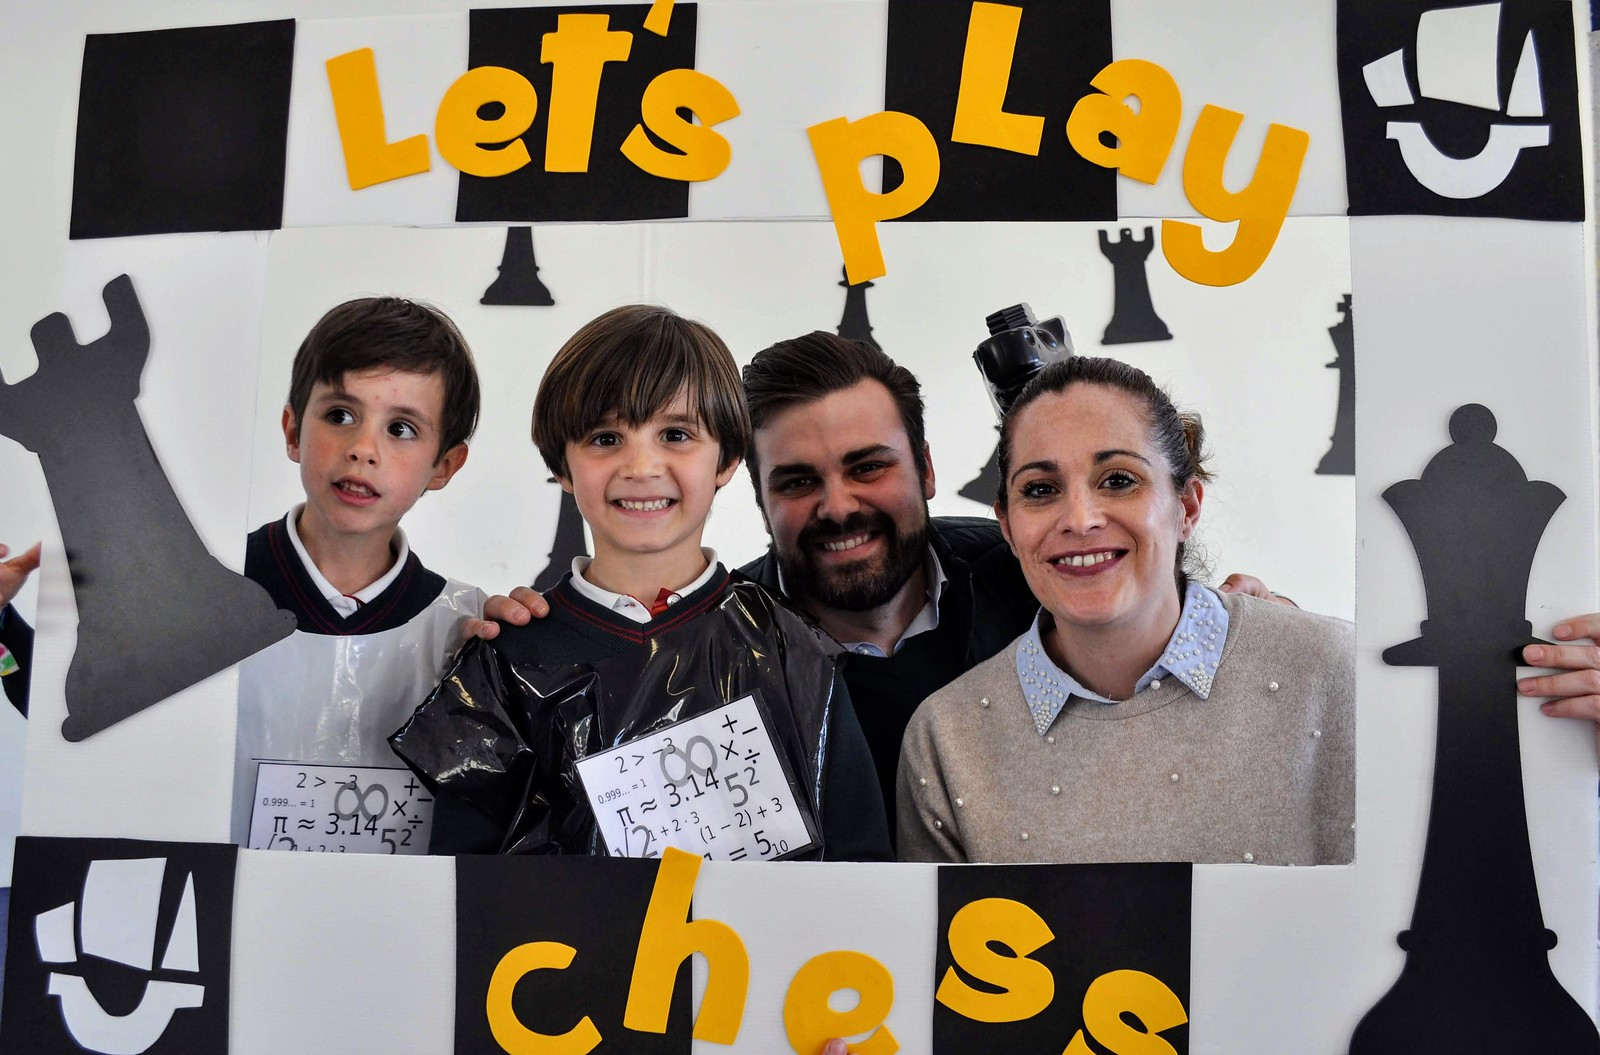 190426 Let's Play Chess